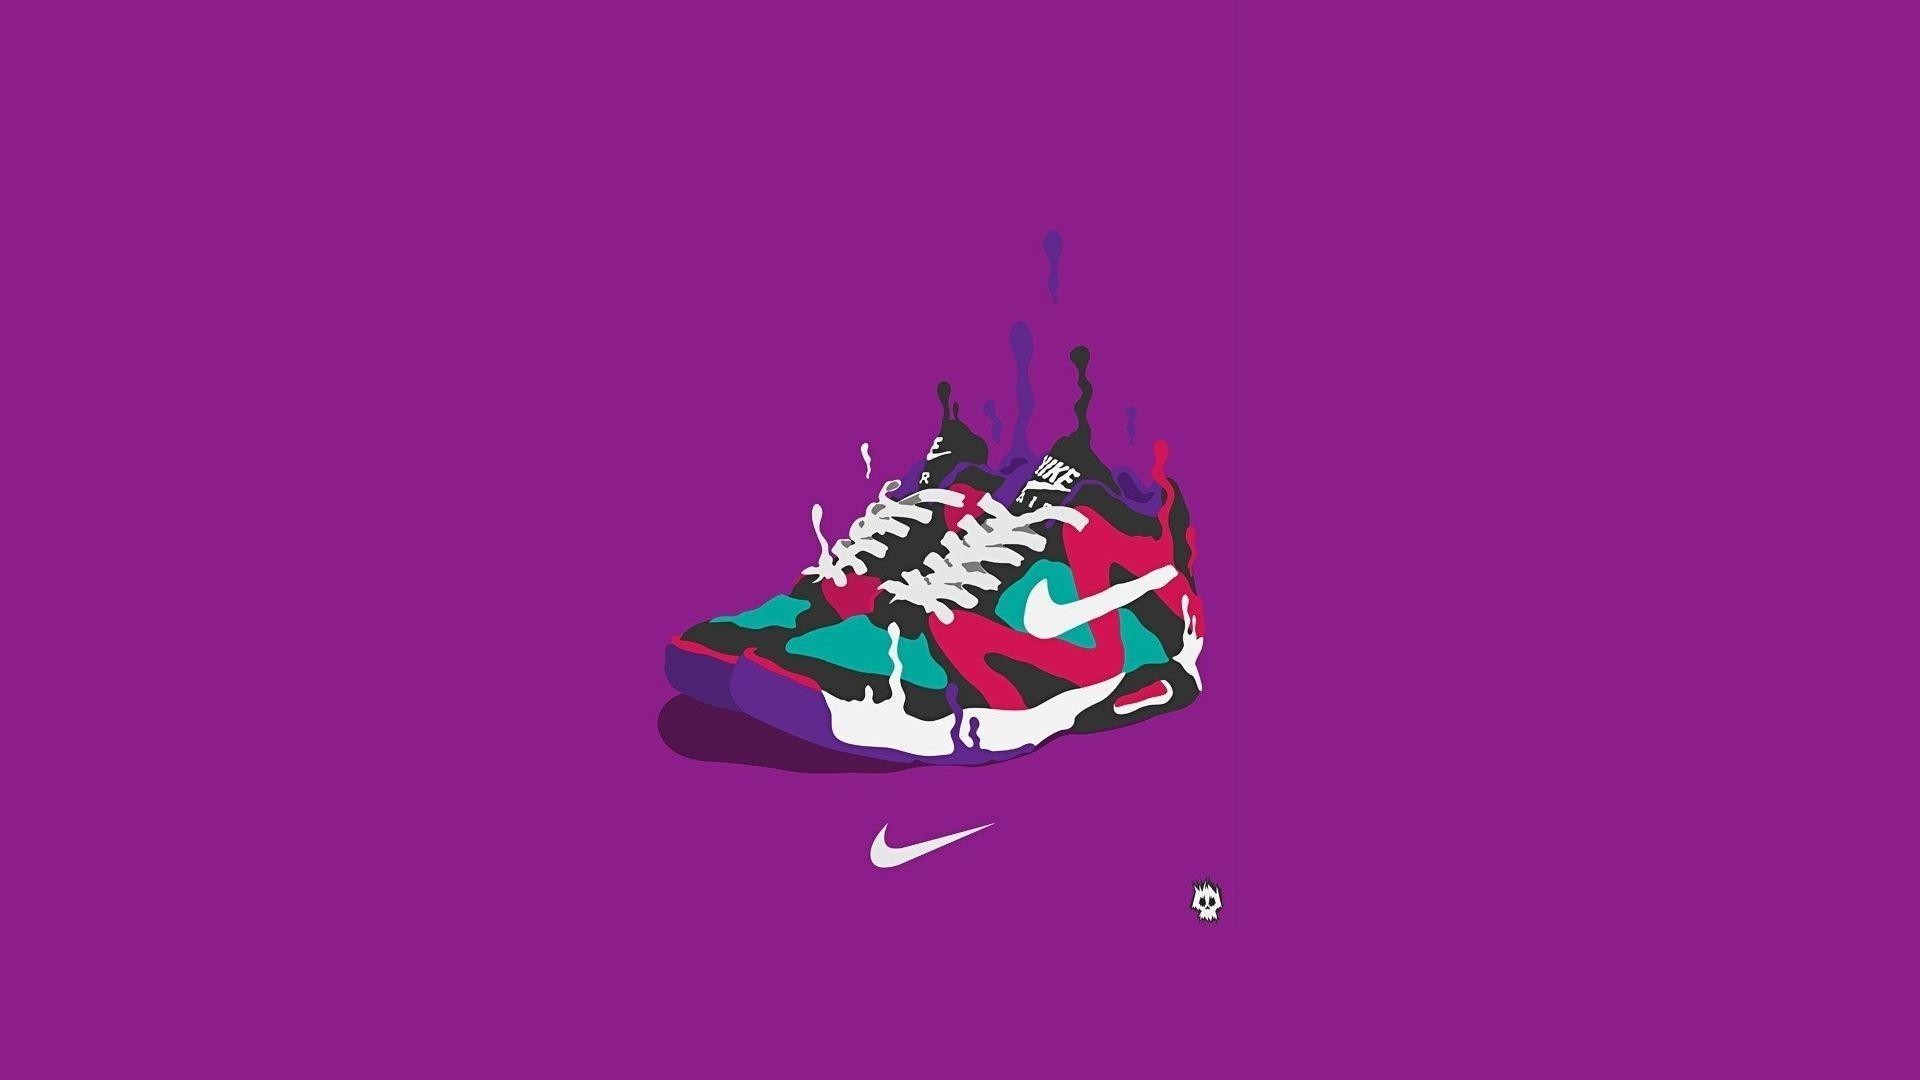 Nike wallpapers hd 2018 wallpapertag - Nike wallpaper hd ...